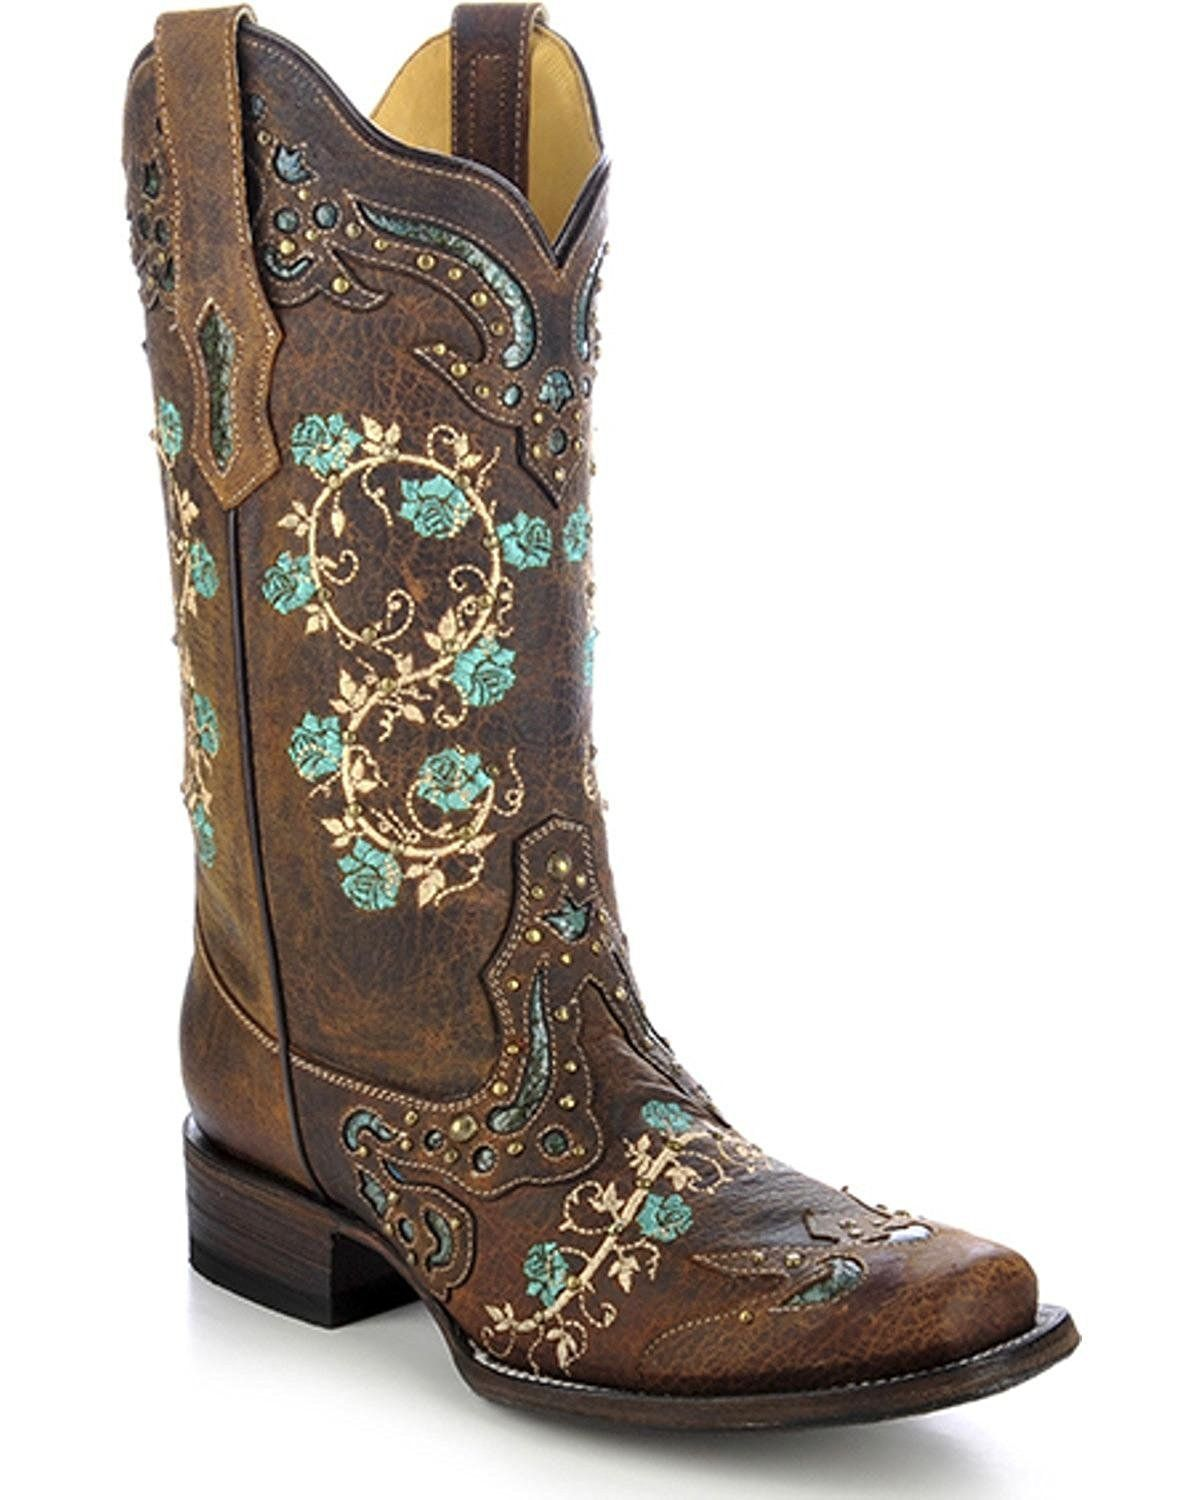 c2978f7693a CORRAL Women's Studded Floral Embroidery Cowgirl Boot Square Toe - R1373  #cowgirlboots